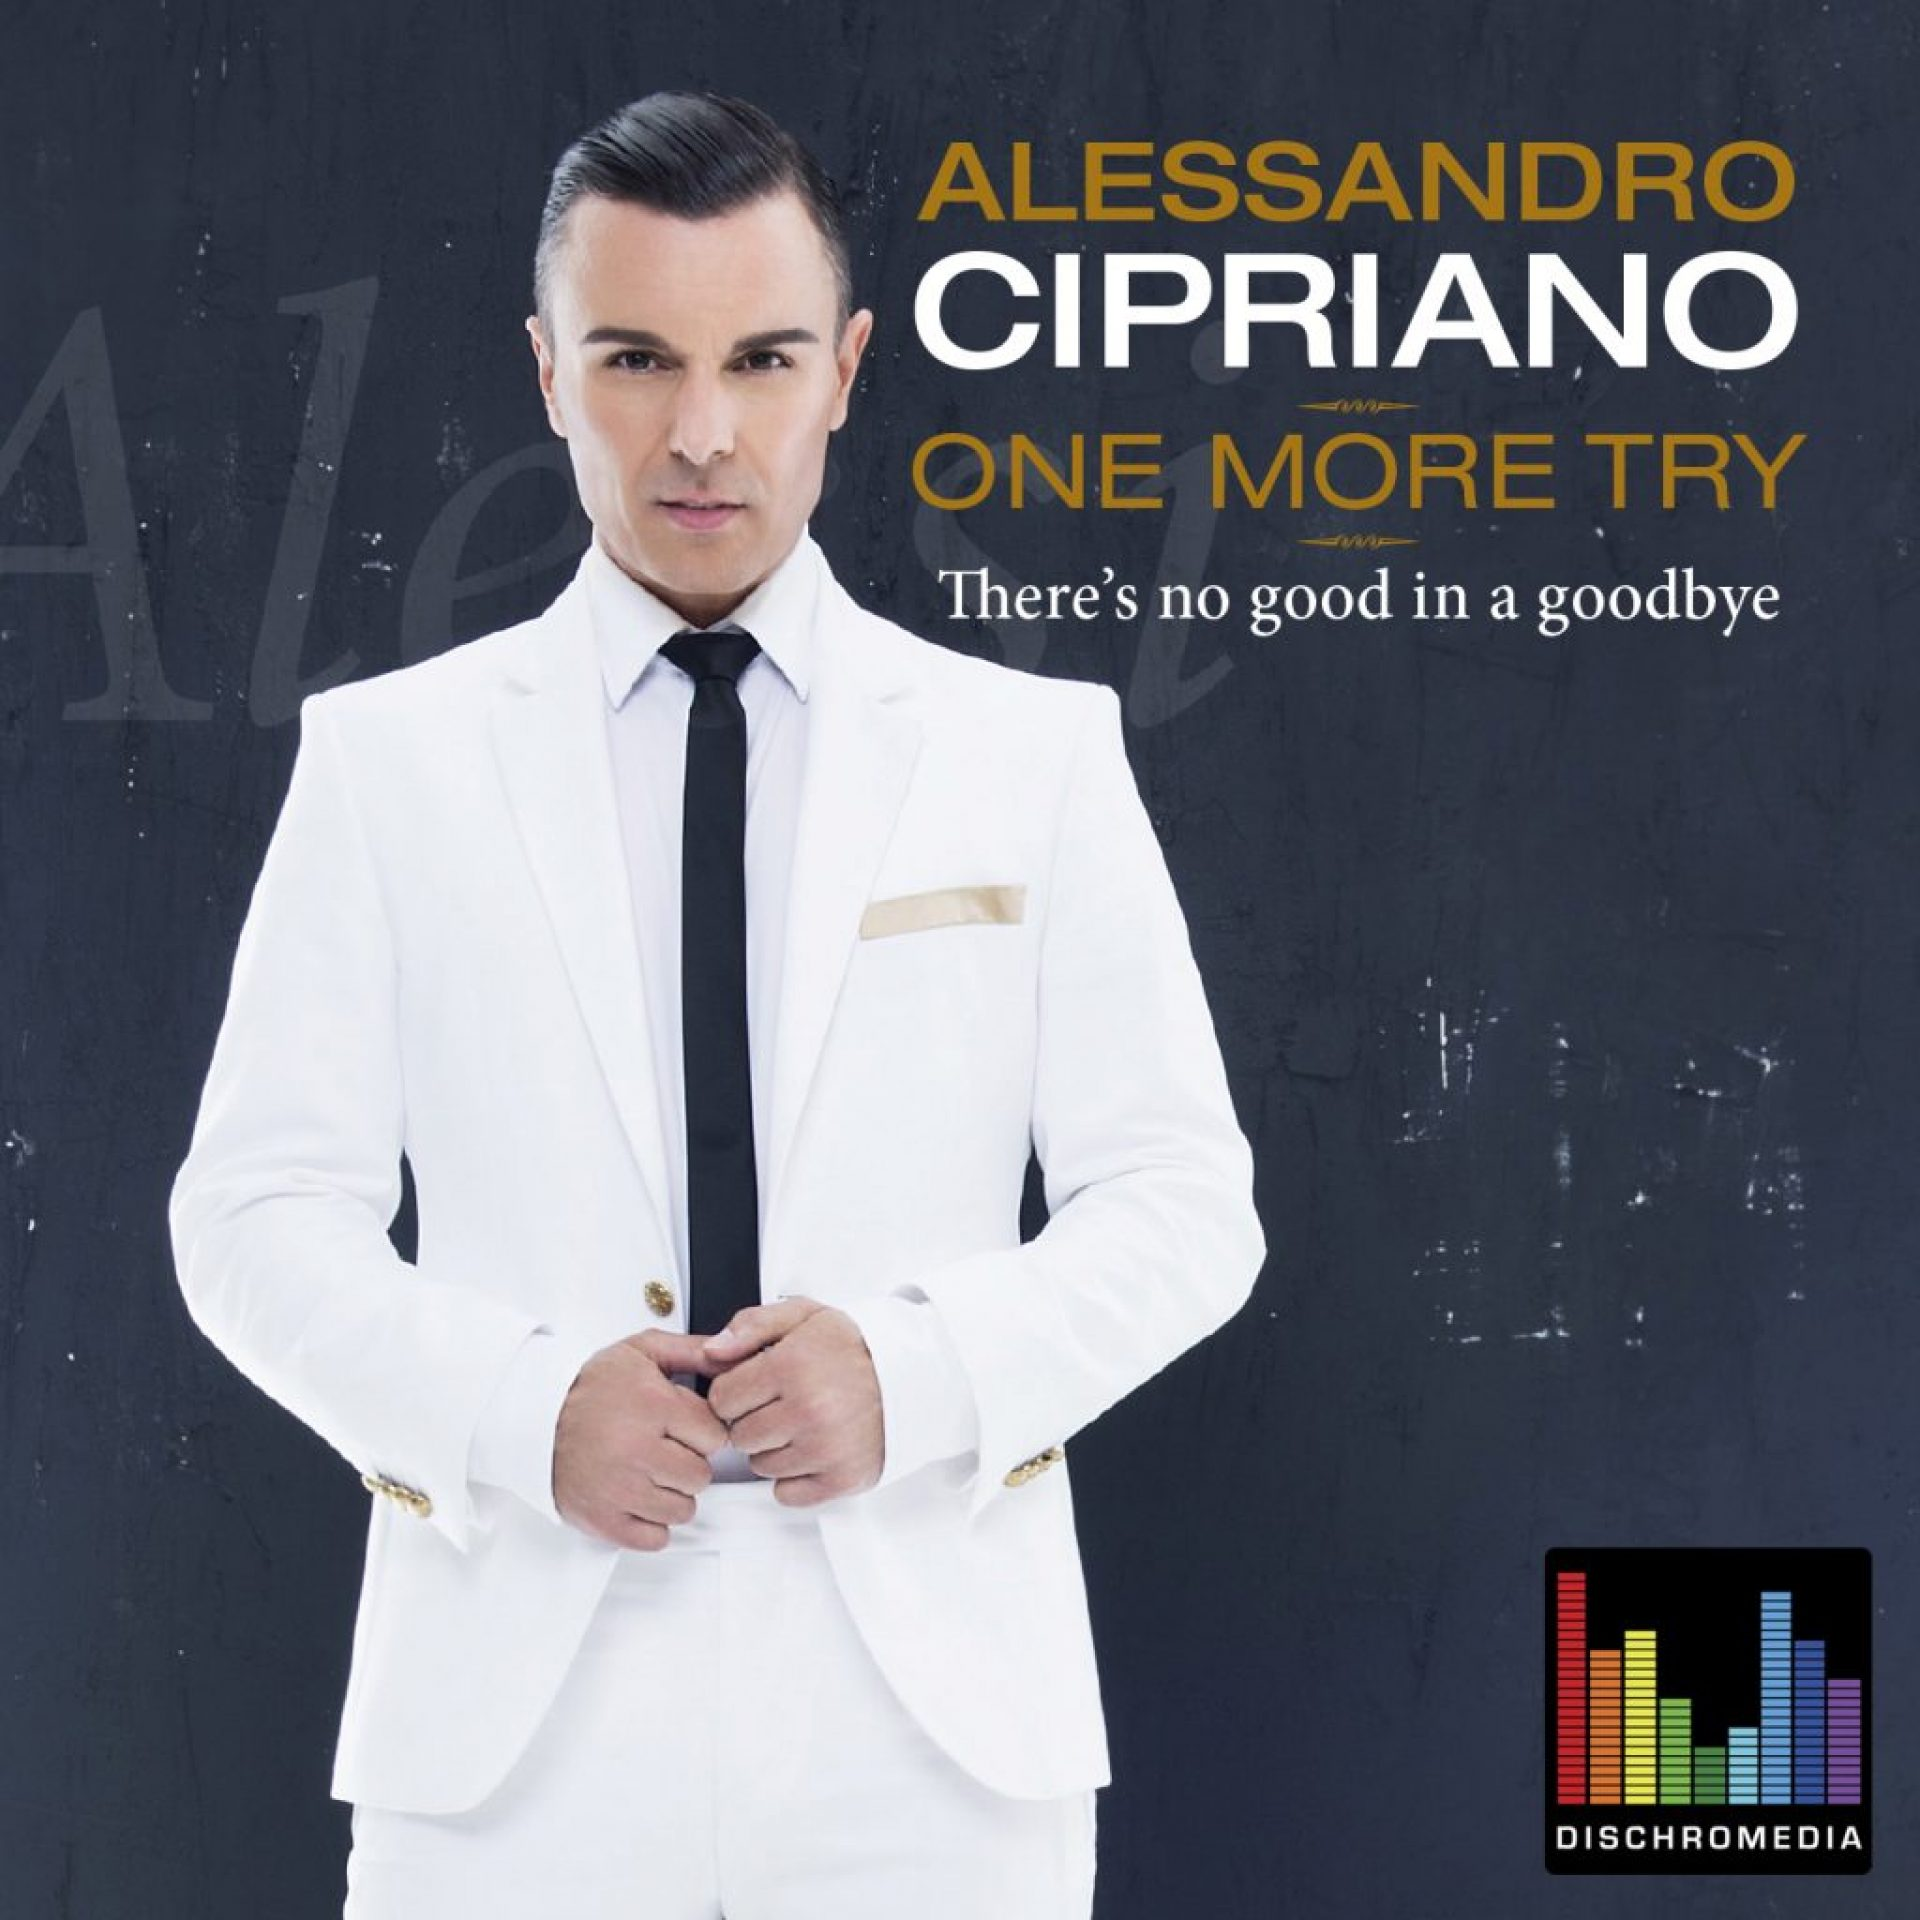 One More Try by Alessandro Cipriano